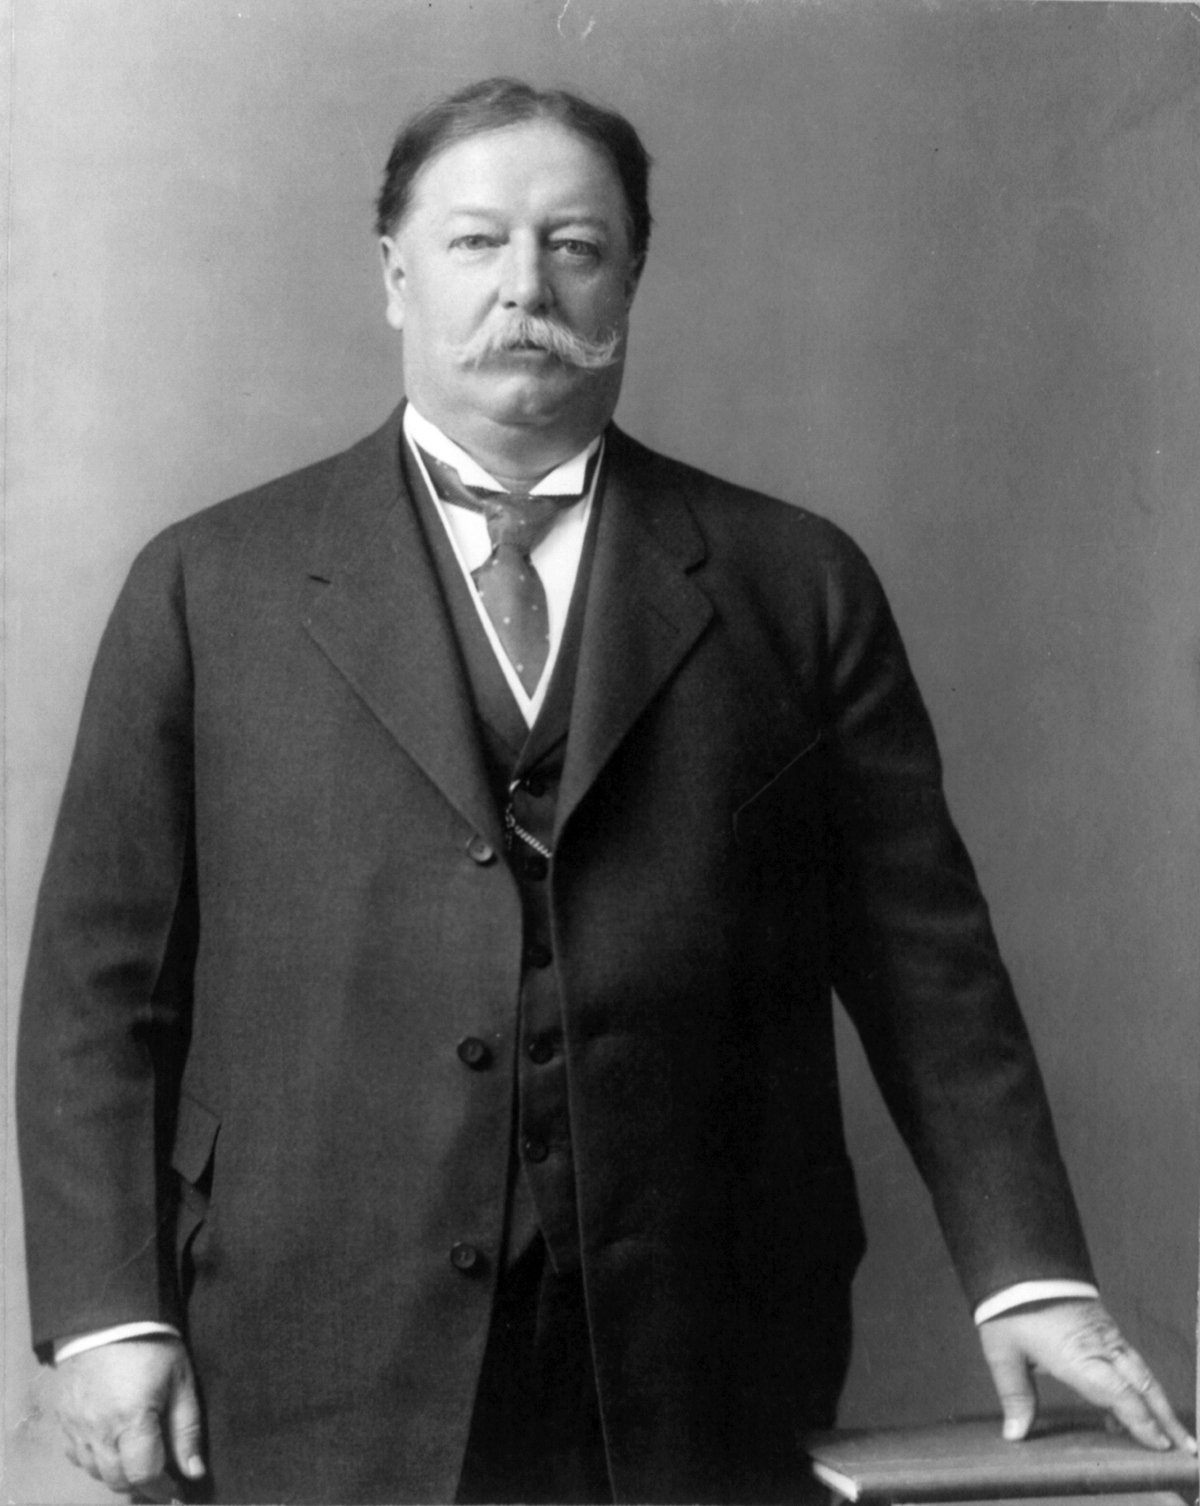 william howard taft William howard taft was elected the 27th president of the united states (1909- 1913) and later became the tenth chief justice of the united states (1921-193.